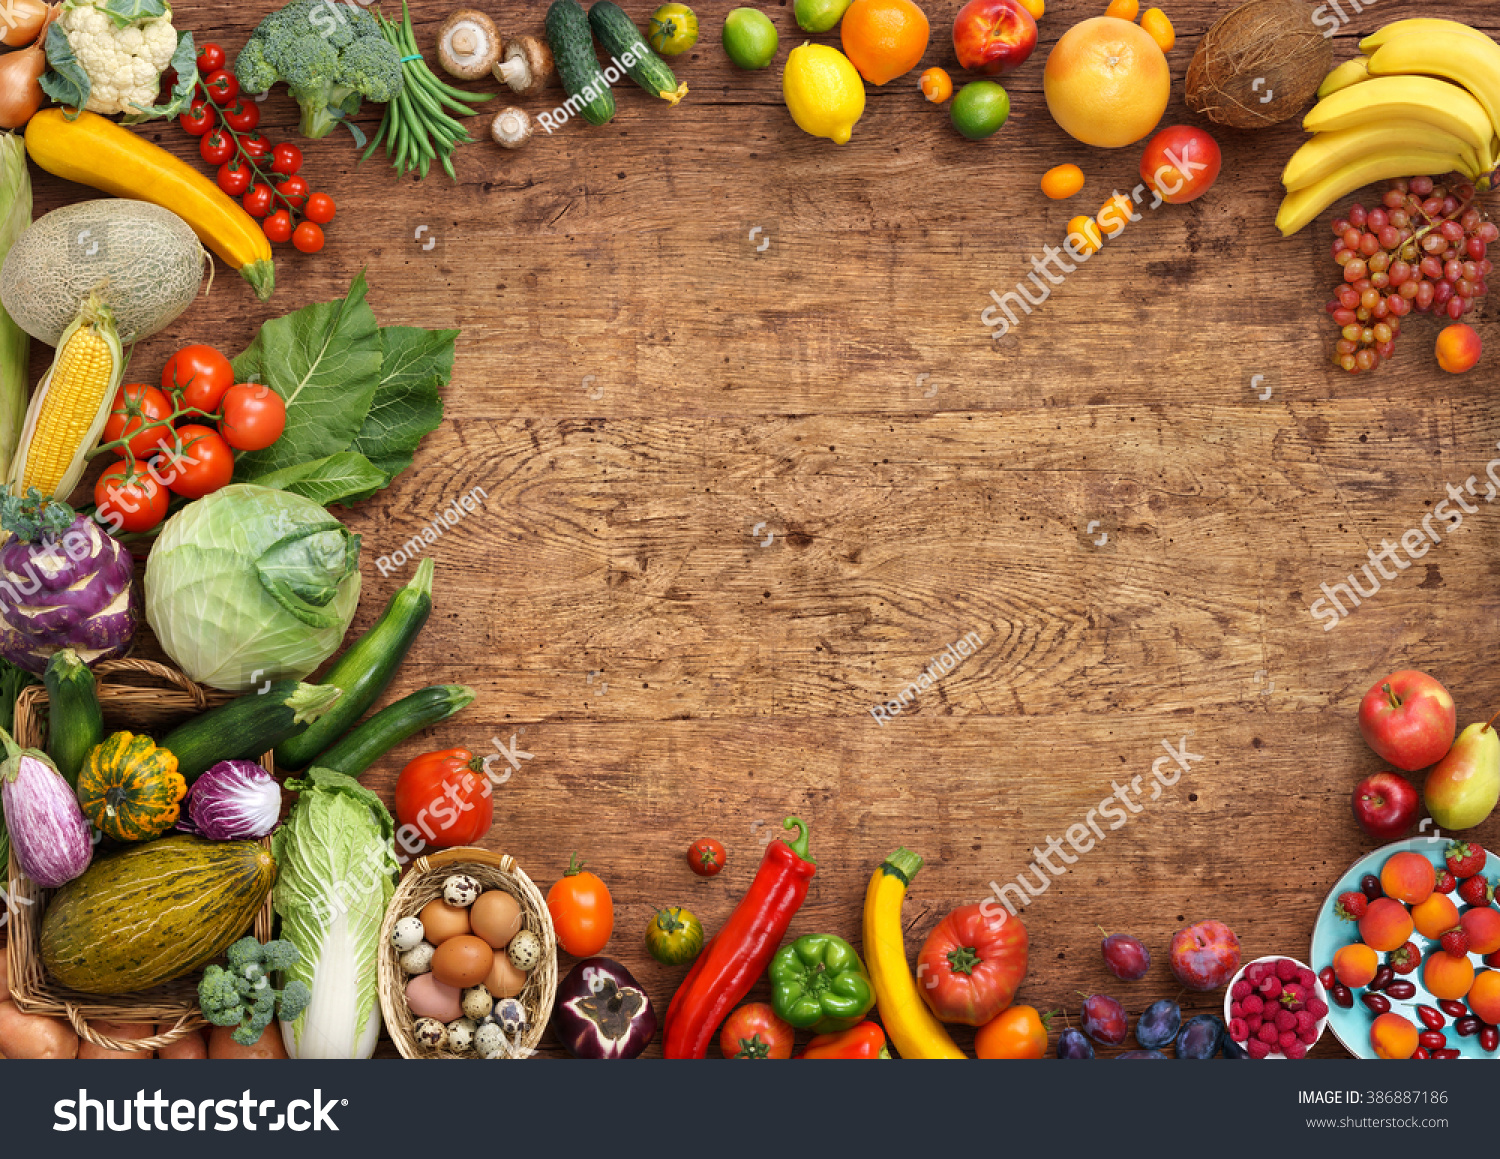 Food background studio photo of different fruits and vegetables - Organic Food Background Studio Photo Of Different Fruits And Vegetables On Old Wooden Table